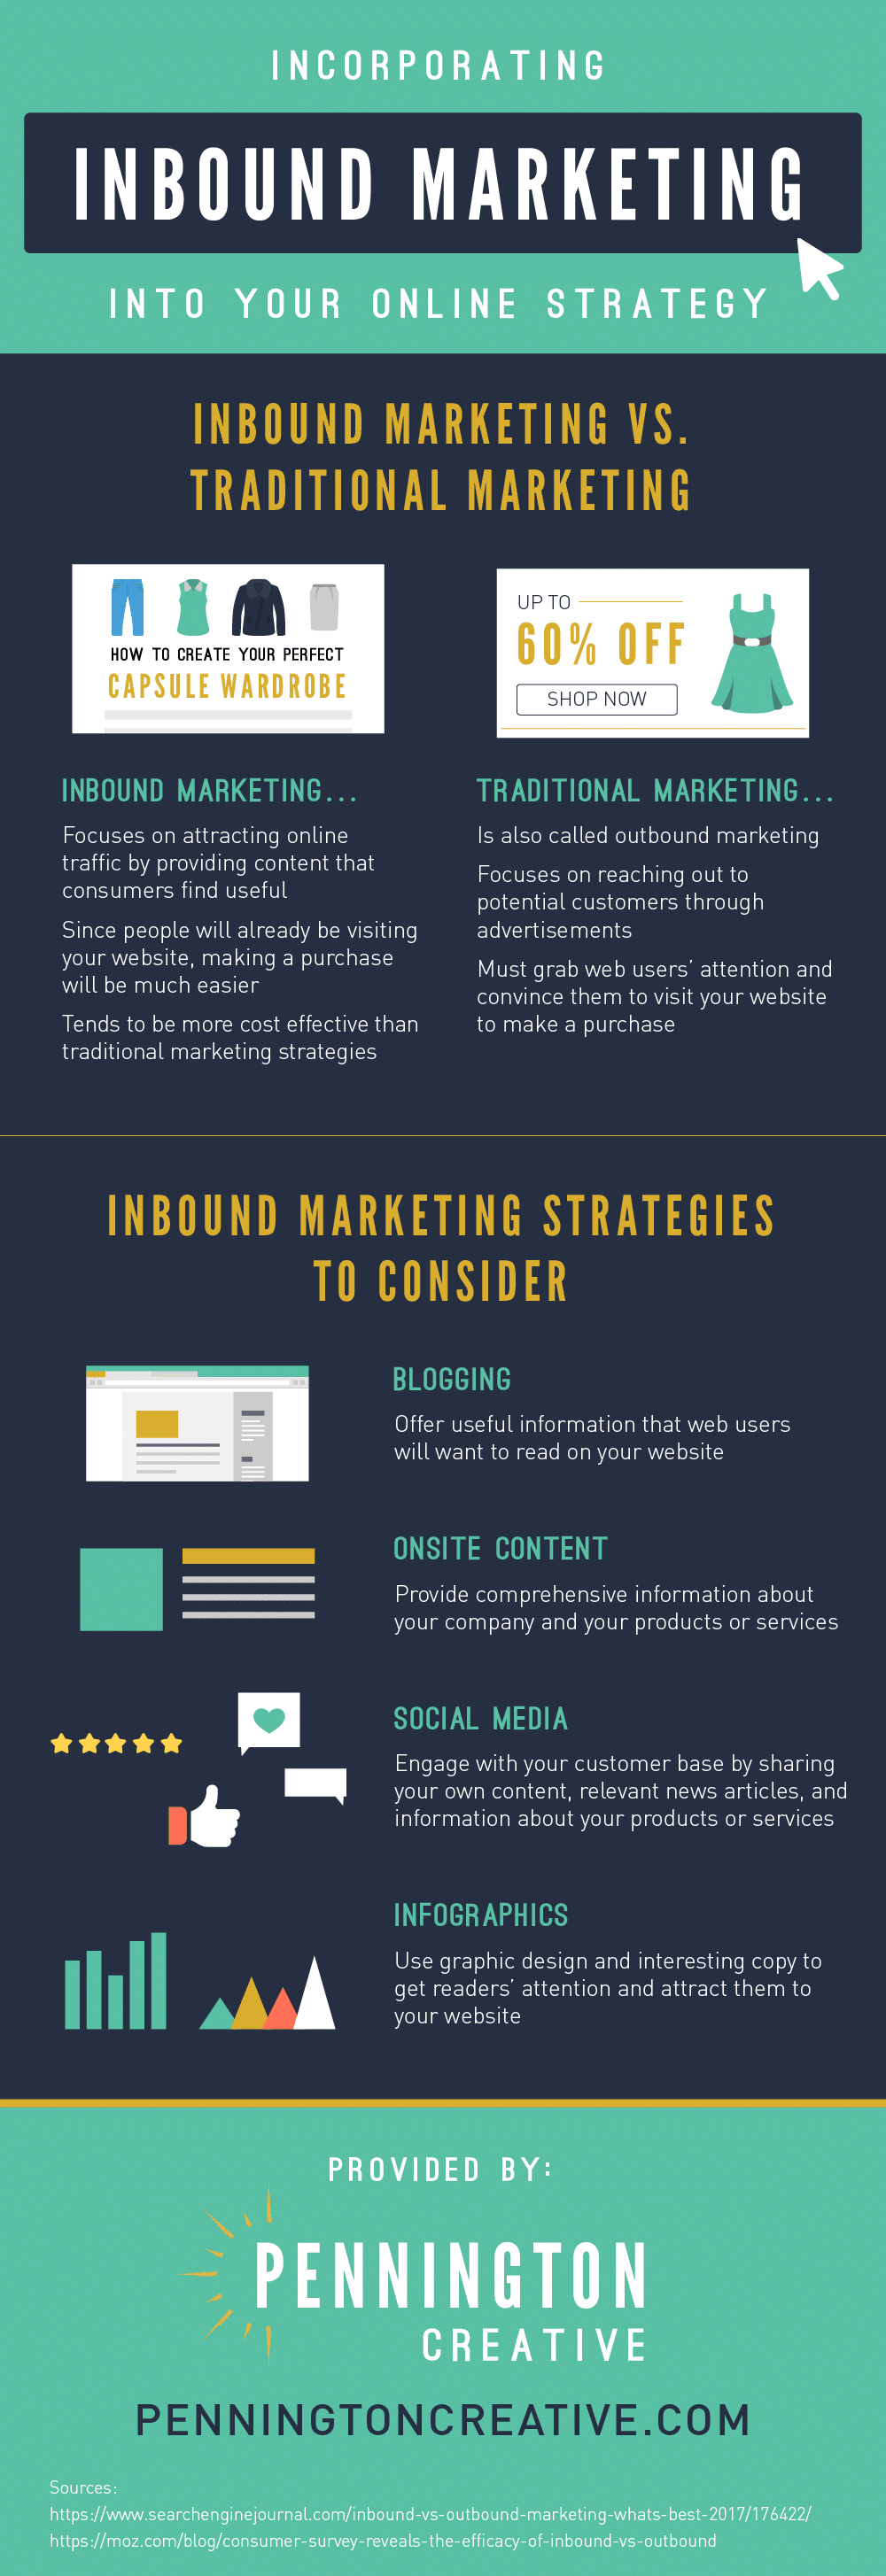 Infographic breaking down the basics of inbound marketing.